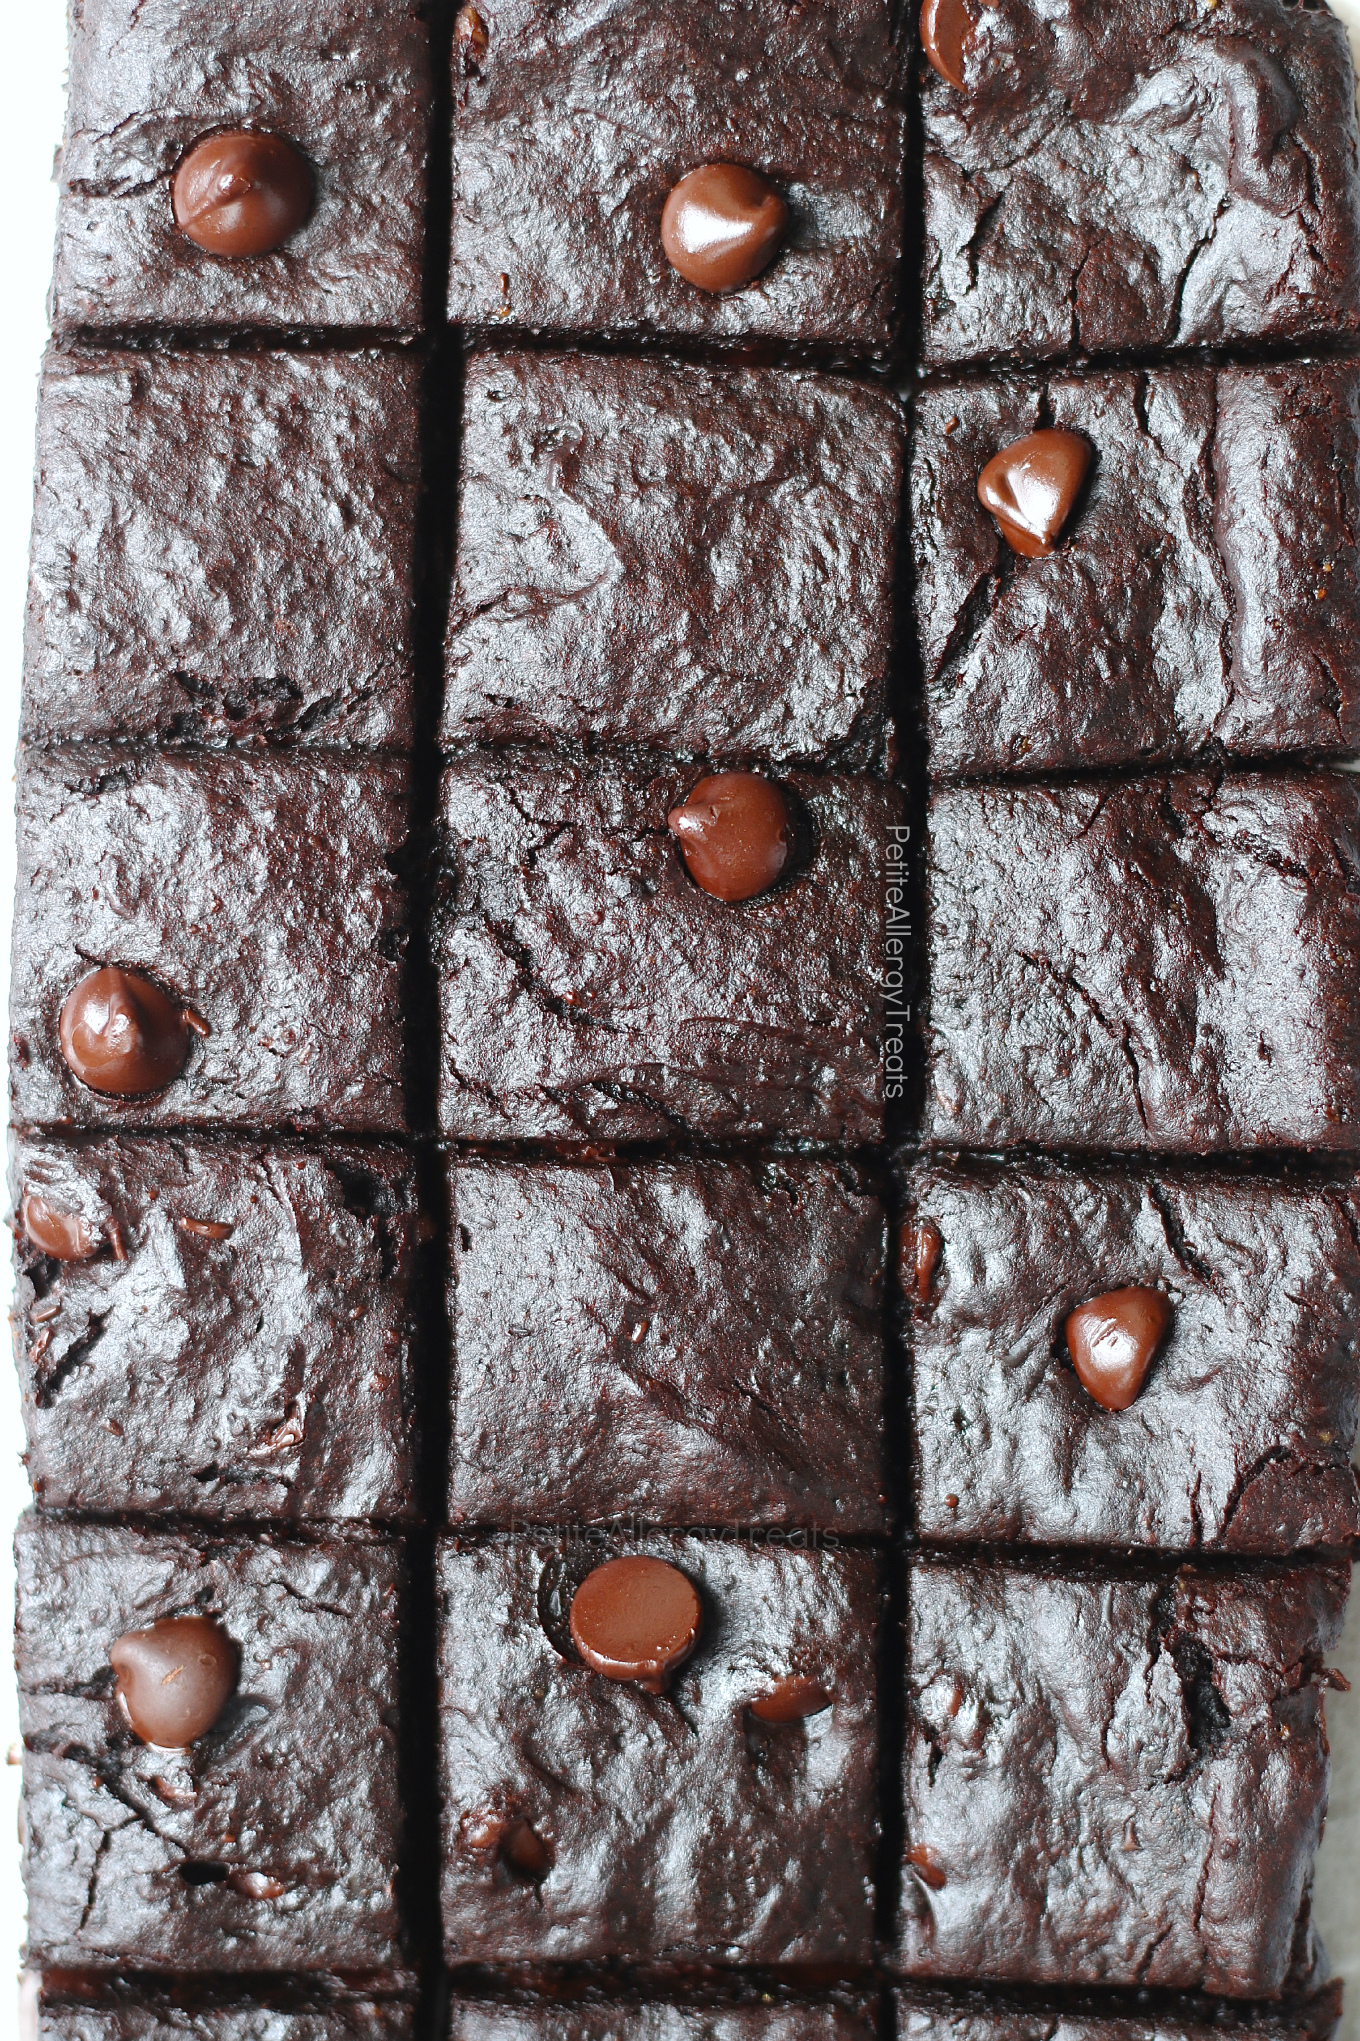 Protein Flourless Brownies (egg free dairy free gluten free Vegan) Recipe- Gooey decadent brownies packed with protein. Nut free and Food allergy friendly.